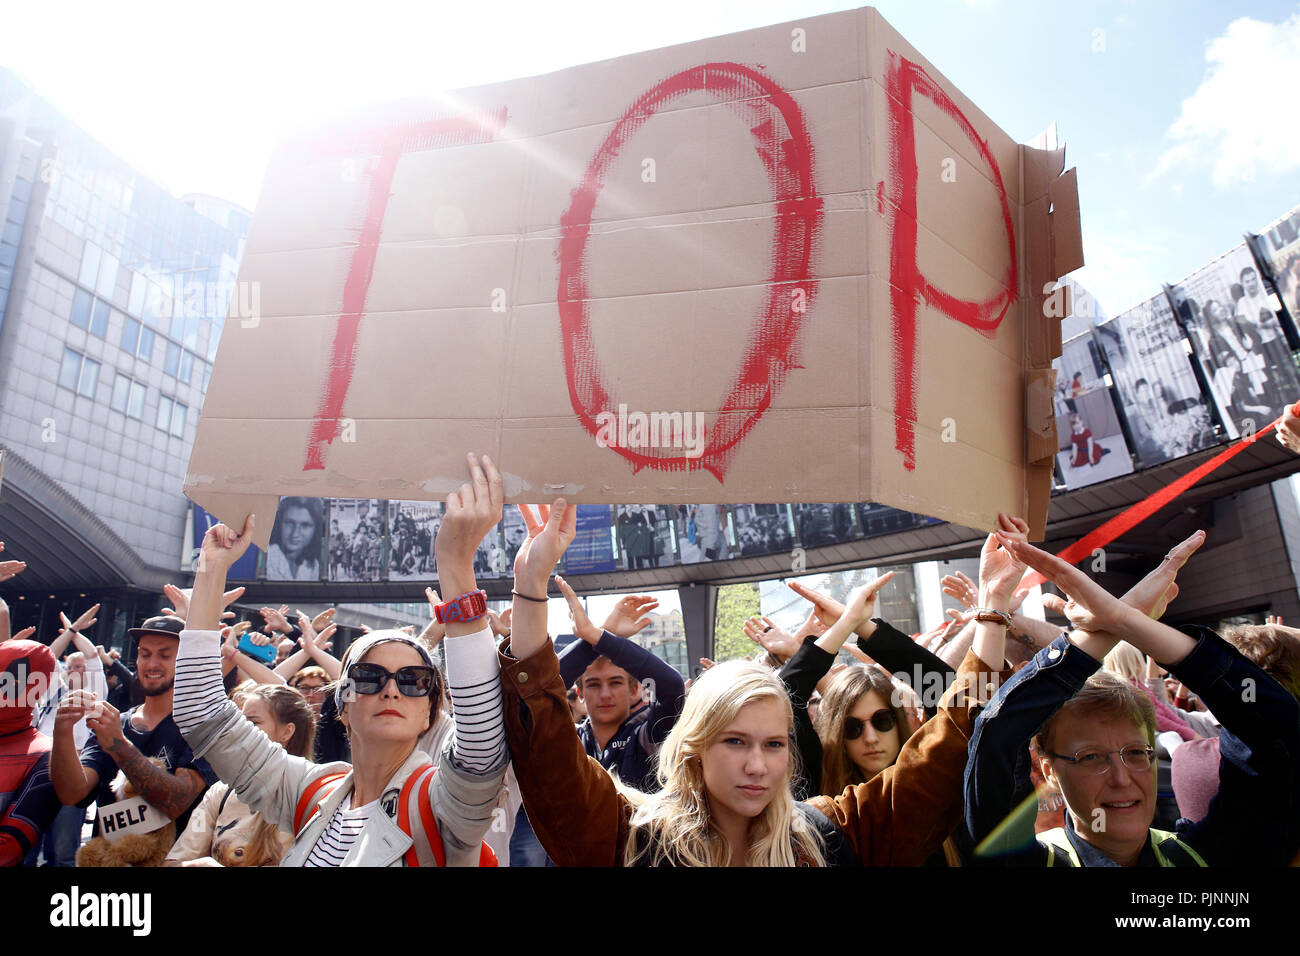 Brussels, Belgium. 8th Sep. 2018.Activists hold placards and chant slogans during a demonstration to demand immediate an action on climate change in front of European Parliament. Alexandros Michailidis/Alamy Live News Stock Photo